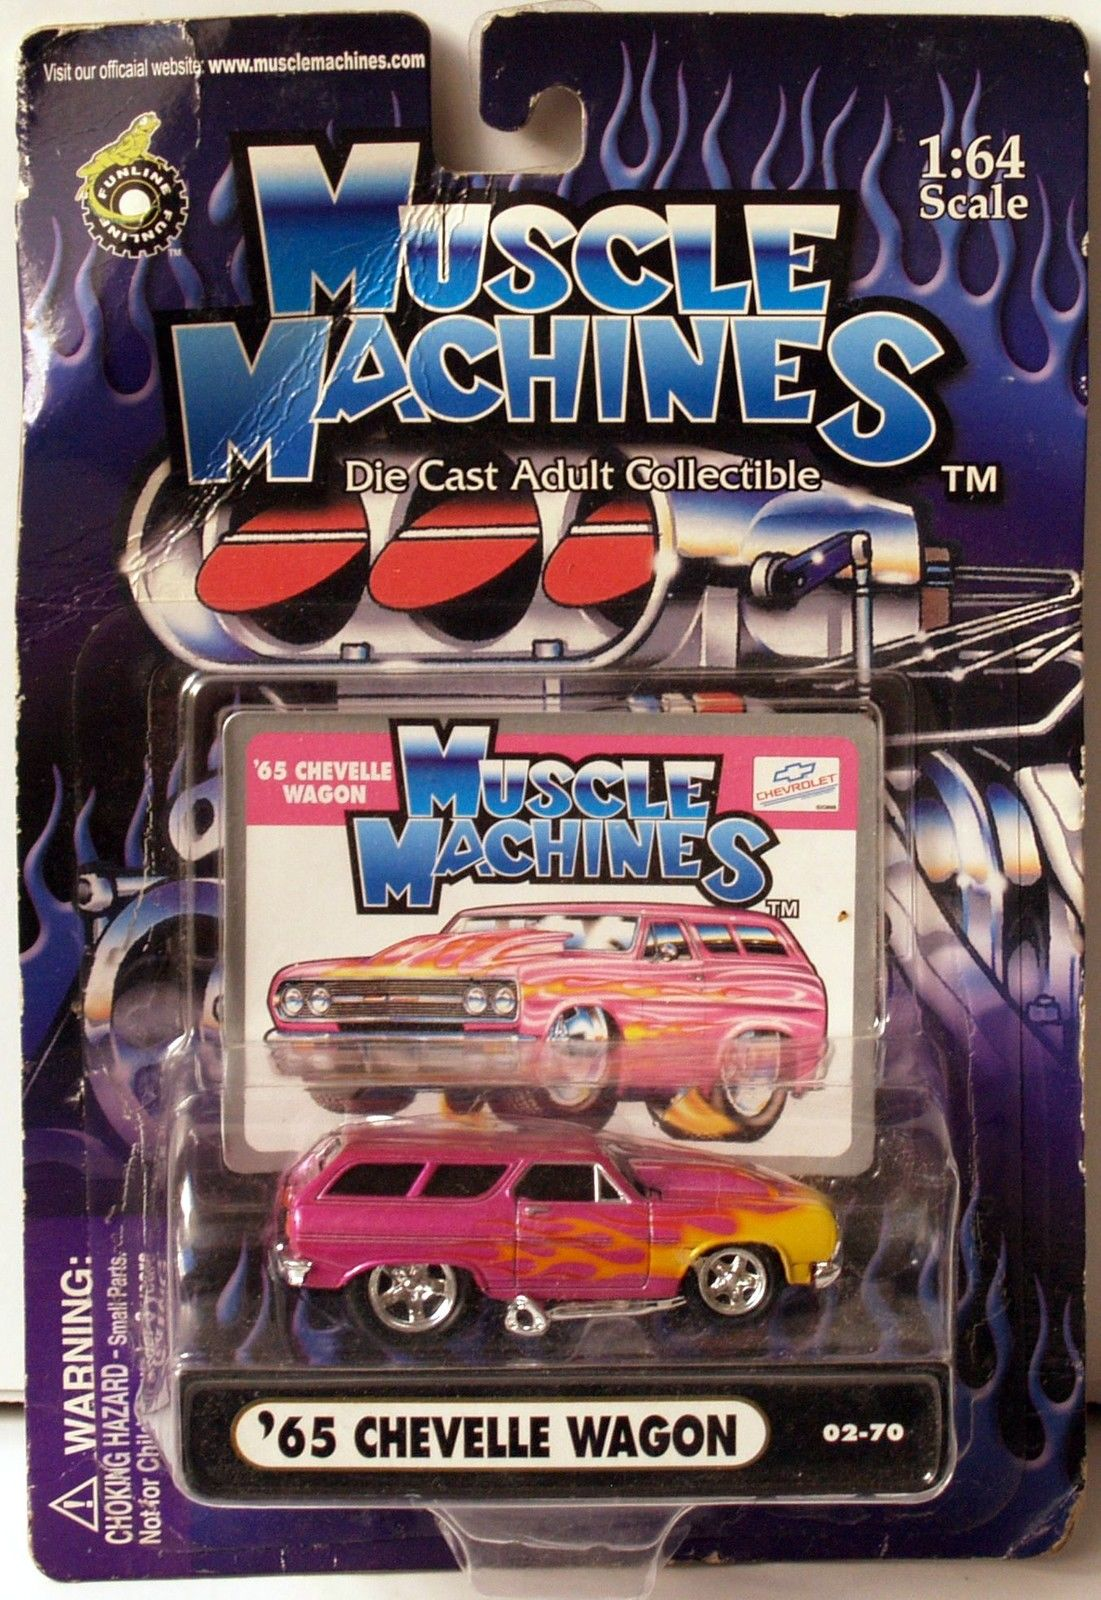 MUSCLE MACHINES 2003 - GROCERY GETTERS - PINK WITH FLAMES '65 CHEVELLE WAGON